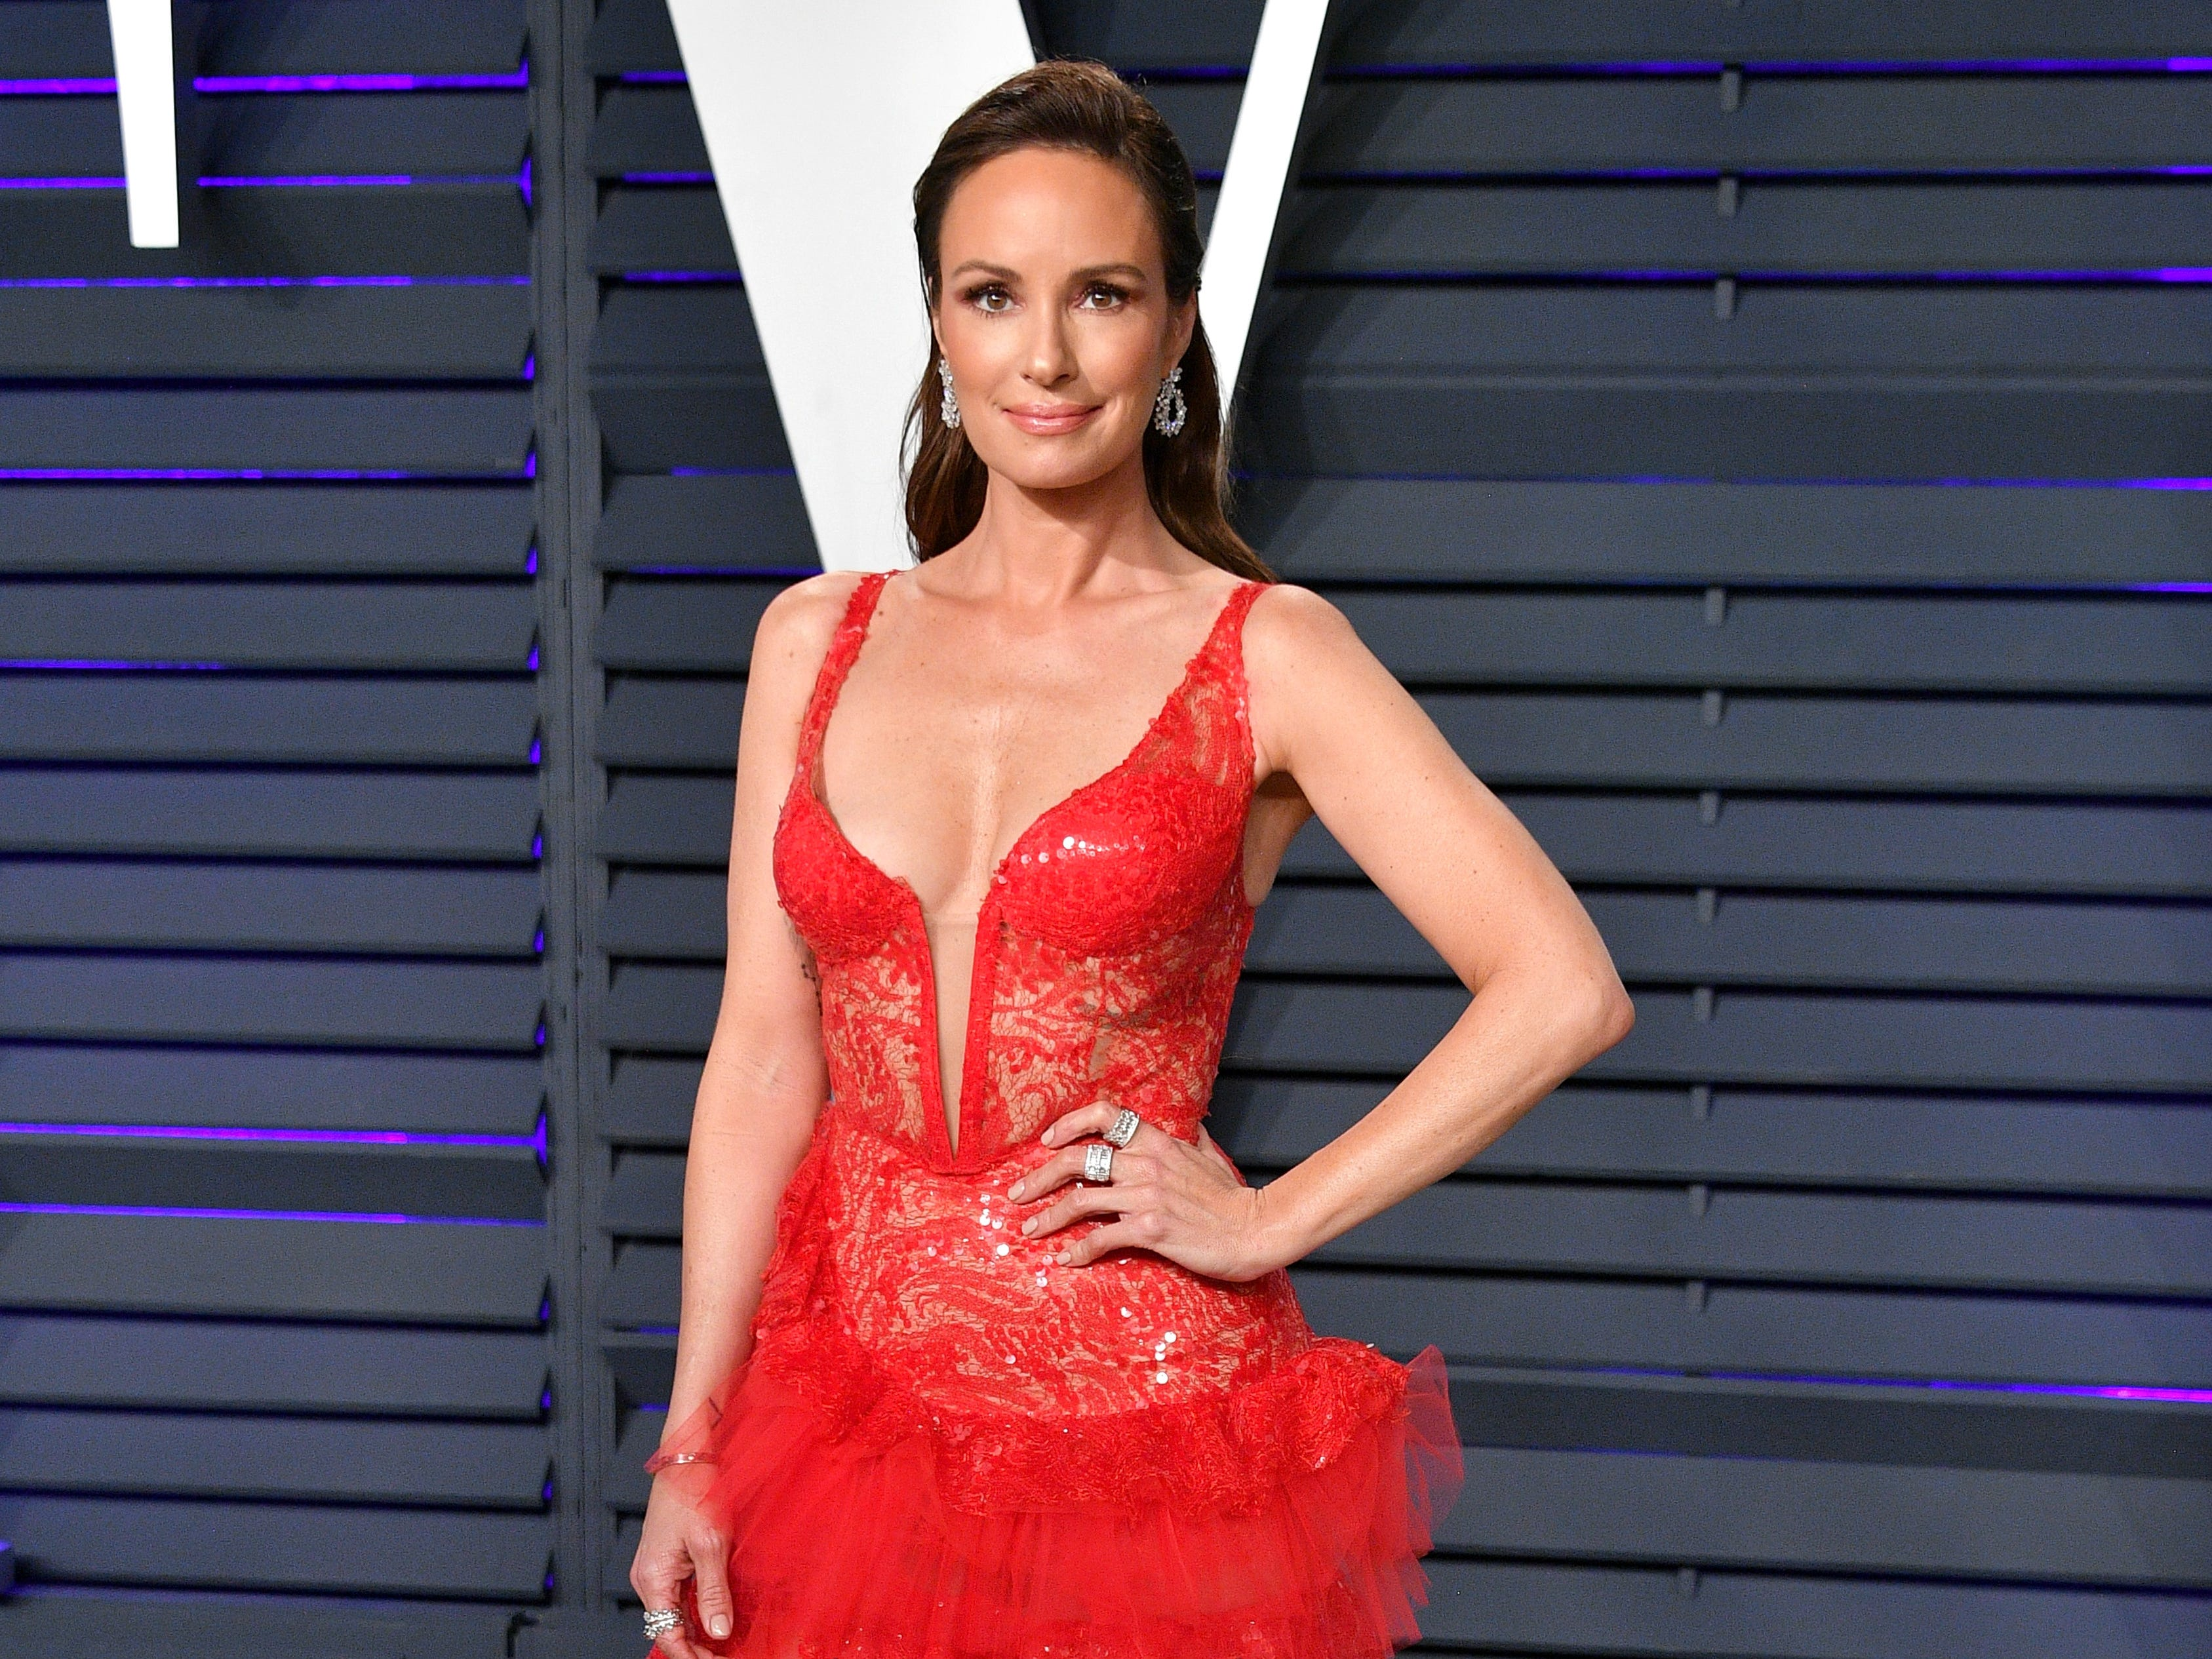 BEVERLY HILLS, CA - FEBRUARY 24:  Catt Sadler attends the 2019 Vanity Fair Oscar Party hosted by Radhika Jones at Wallis Annenberg Center for the Performing Arts on February 24, 2019 in Beverly Hills, California.  (Photo by Dia Dipasupil/Getty Images) ORG XMIT: 775287342 ORIG FILE ID: 1127222384